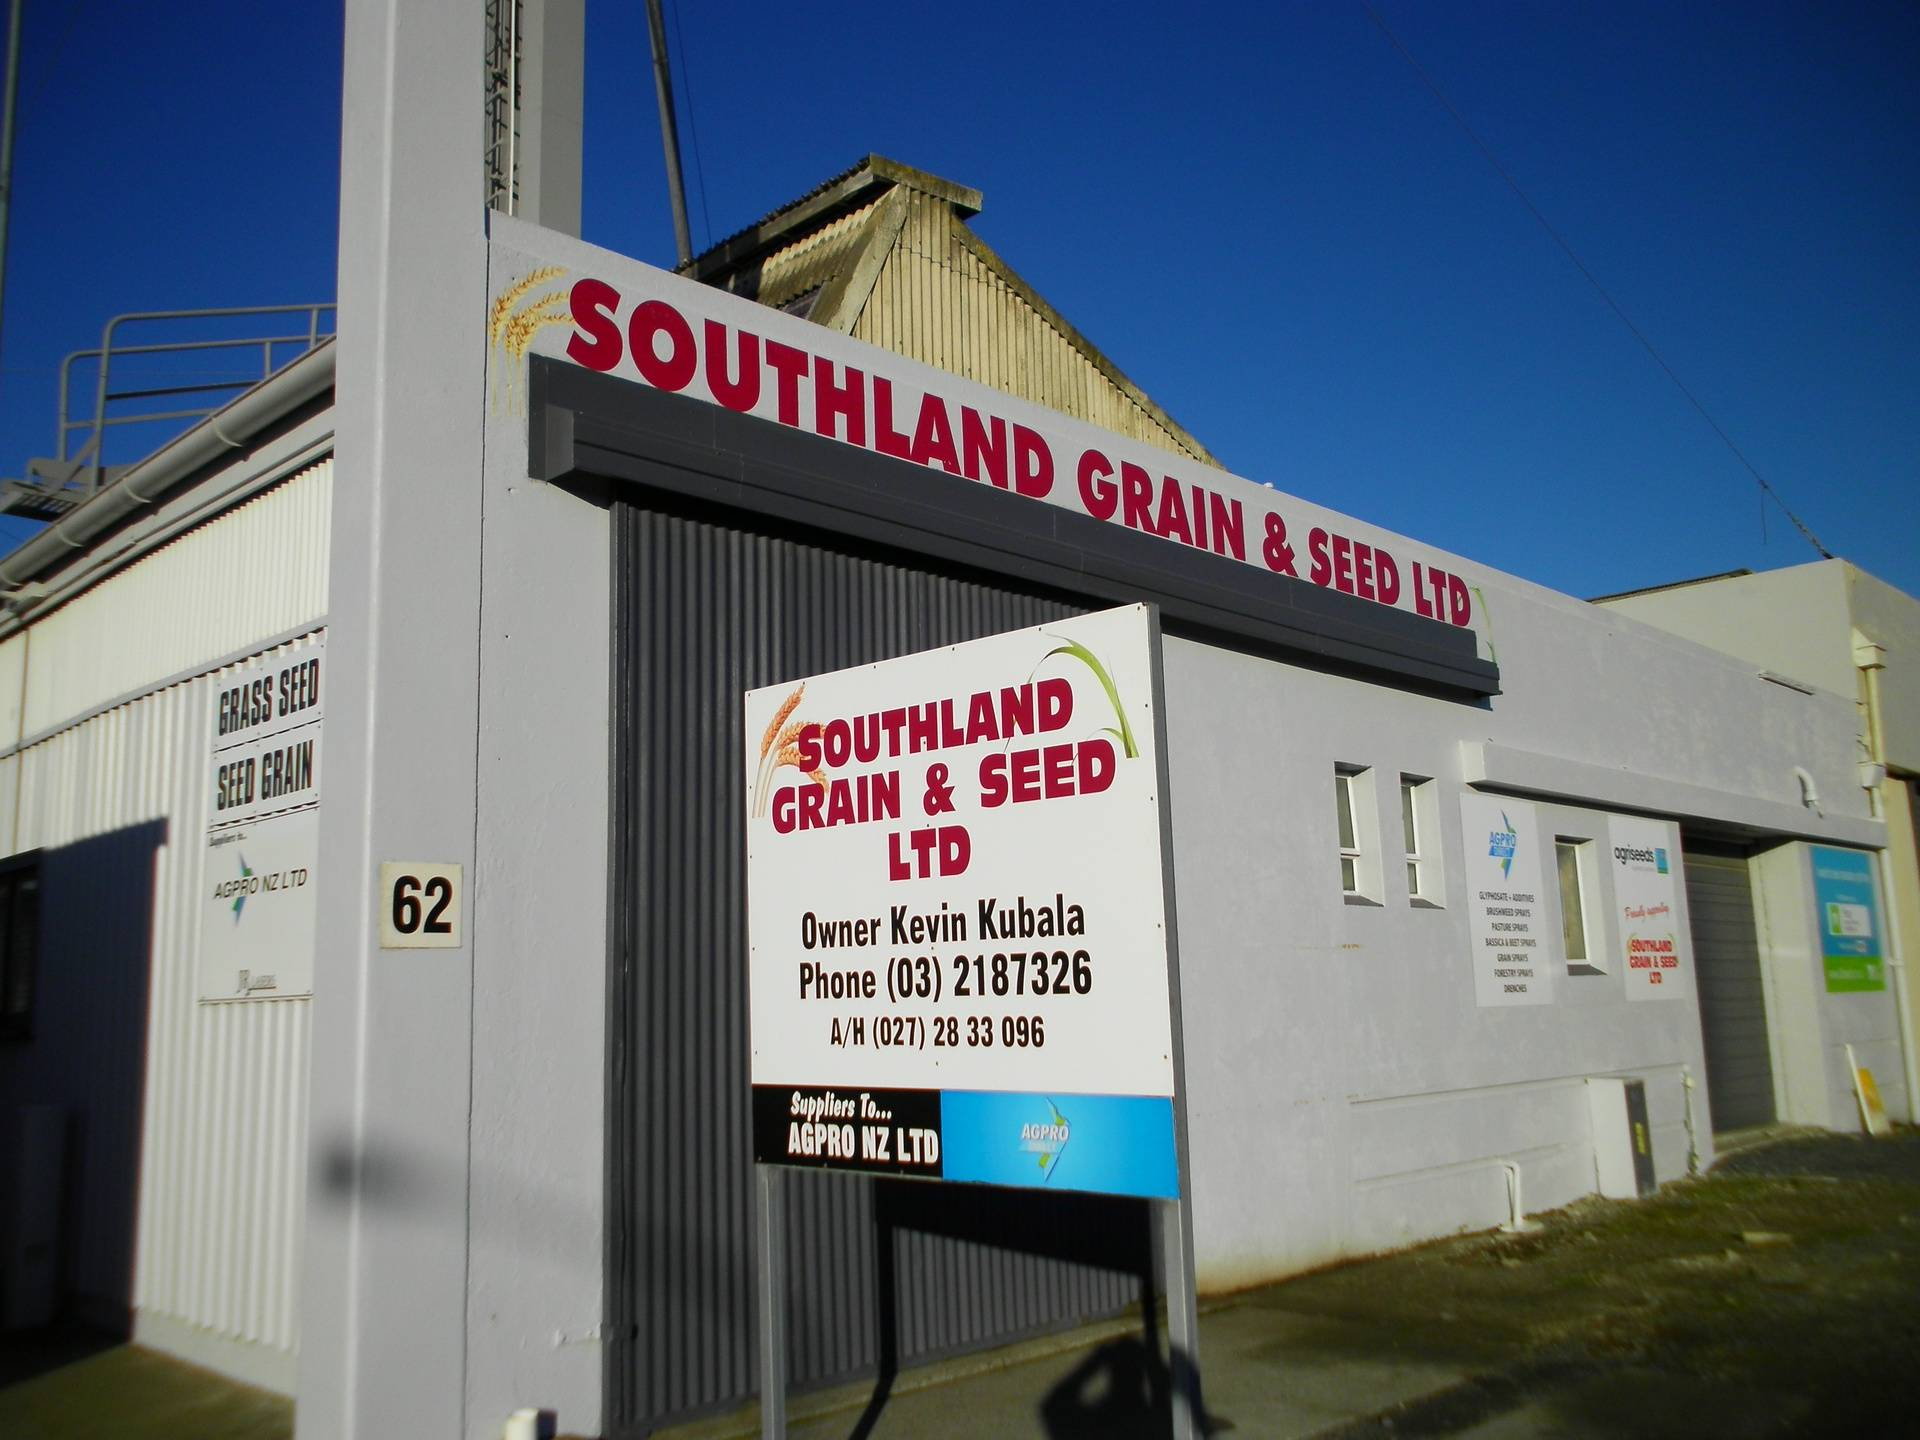 Southland Grain and Seed Store, 62 Annan St, Invercargill, Southland, 9844, New Zealand